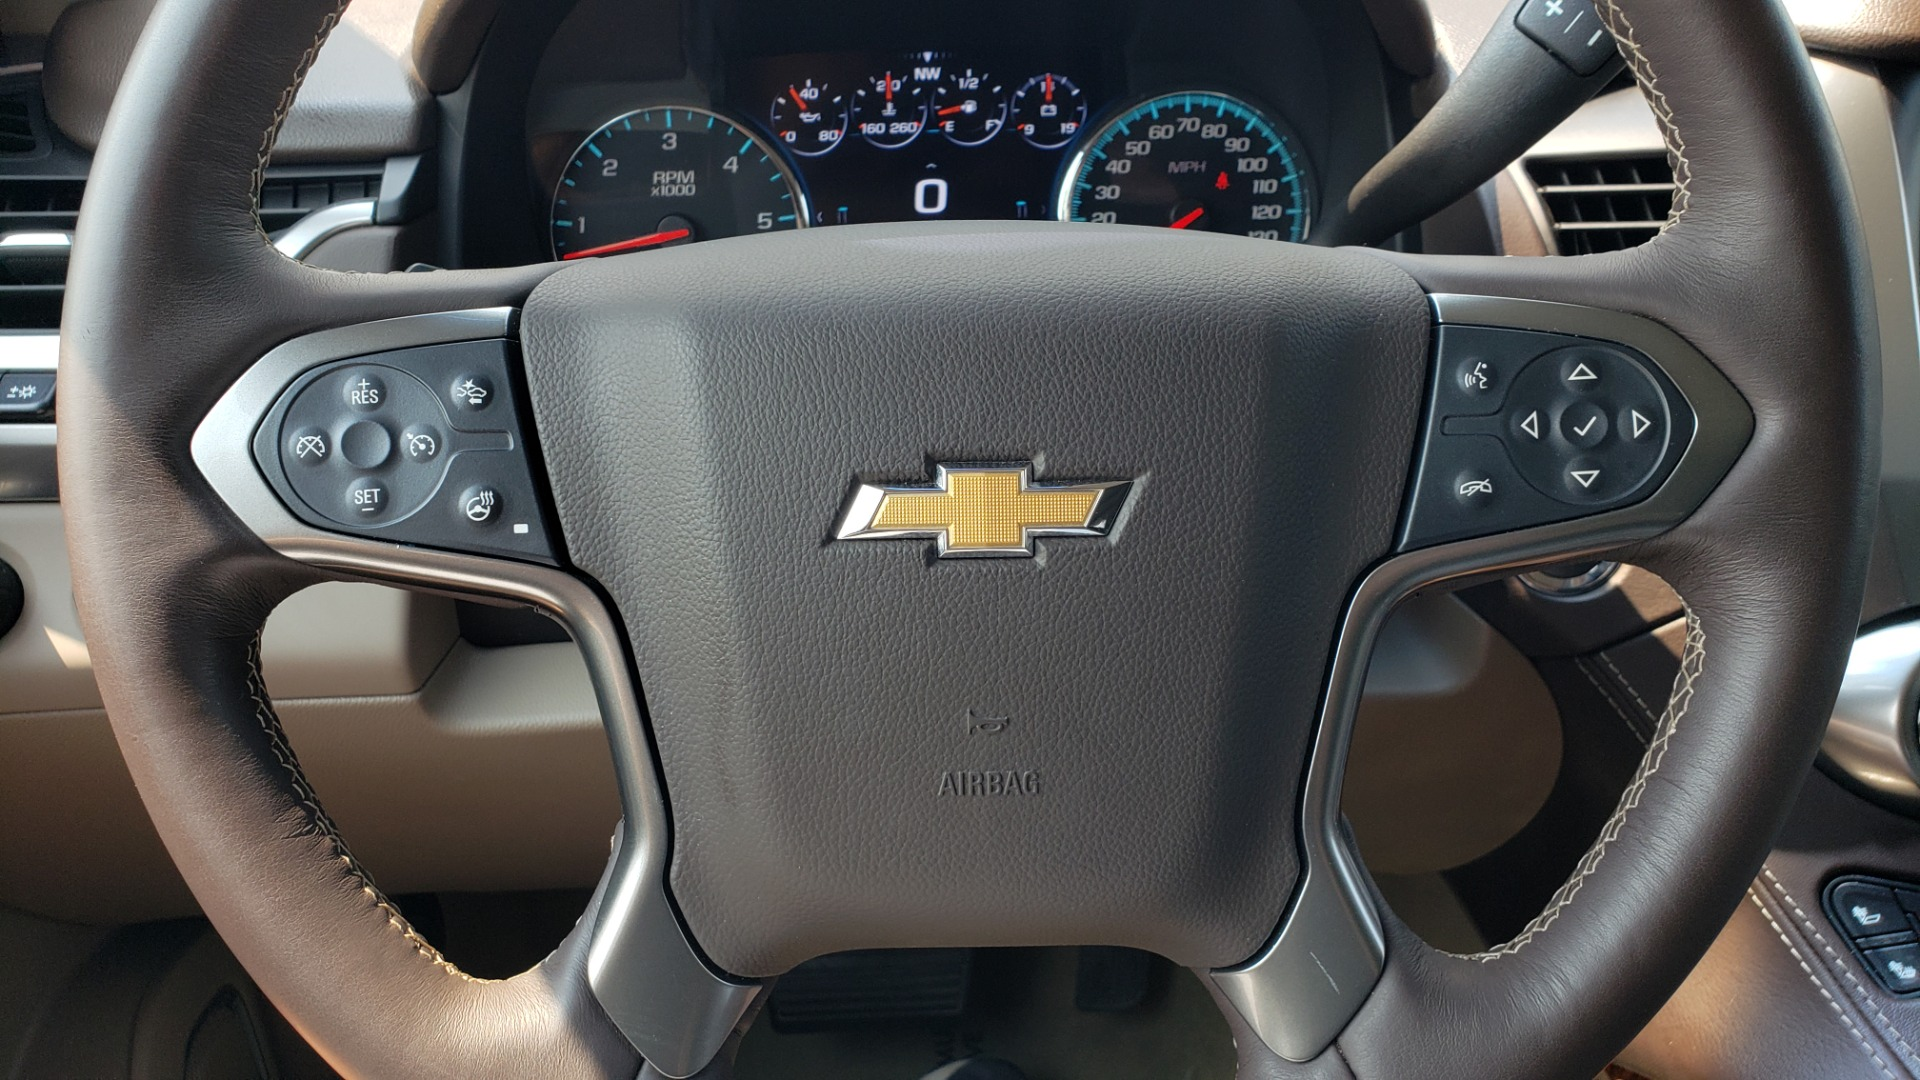 Used 2018 Chevrolet TAHOE PREMIER 4WD / NAV / SUNROOF / BOSE / 3-ROW / HUD / REARVIEW for sale $63,995 at Formula Imports in Charlotte NC 28227 42